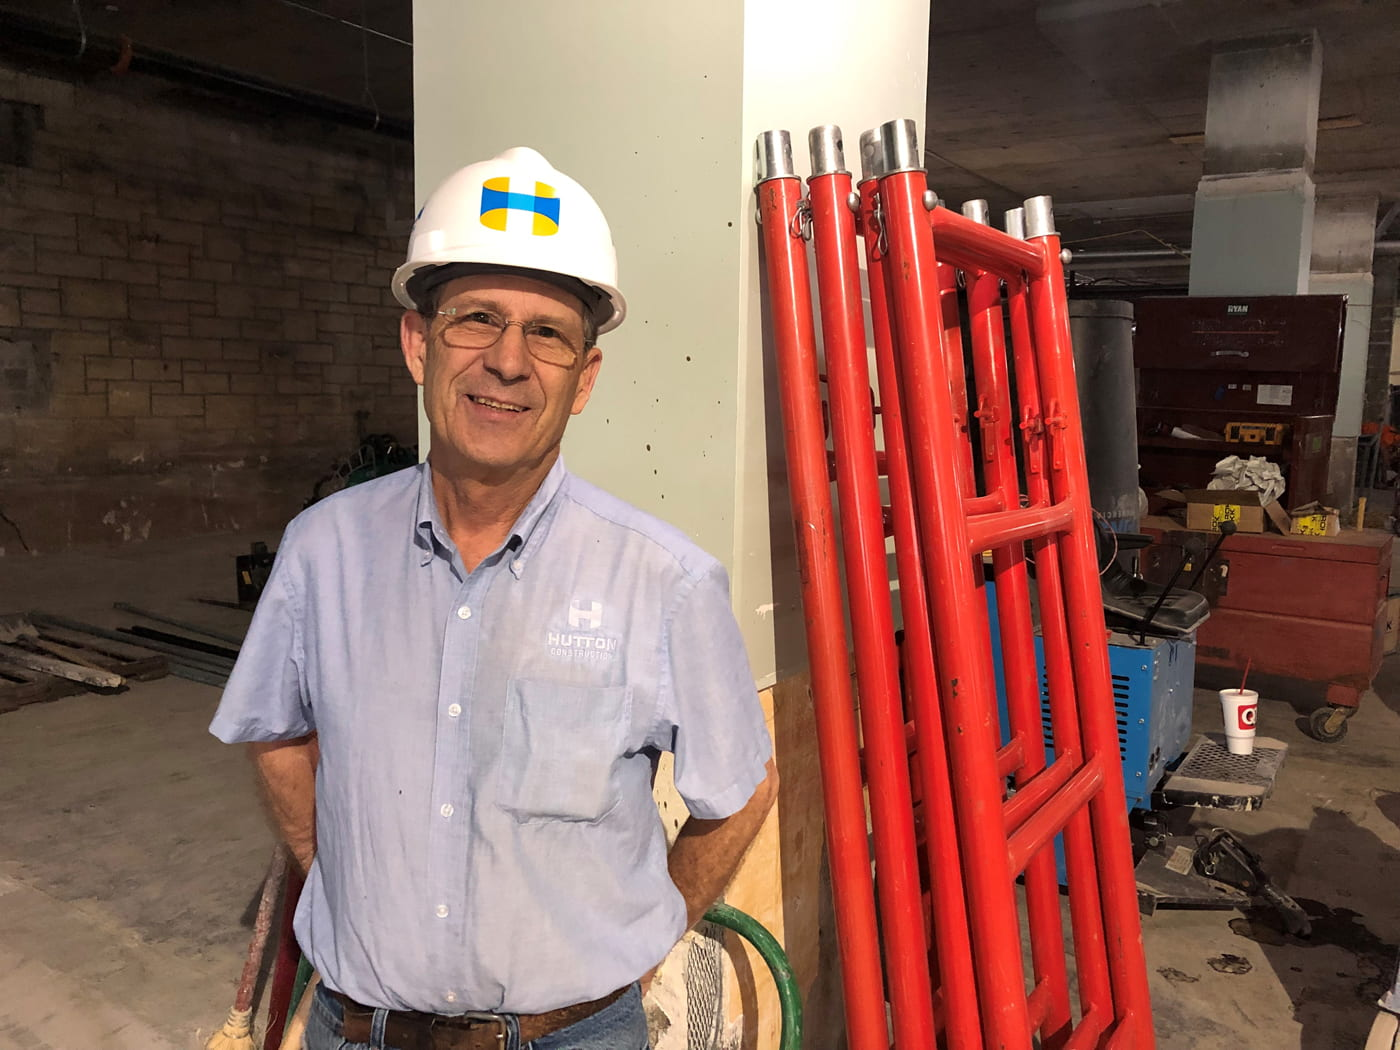 A man wearing glasses and a white hardhat stands on a construction site next to a stack of red metal pipes leaning on a concrete pillar.